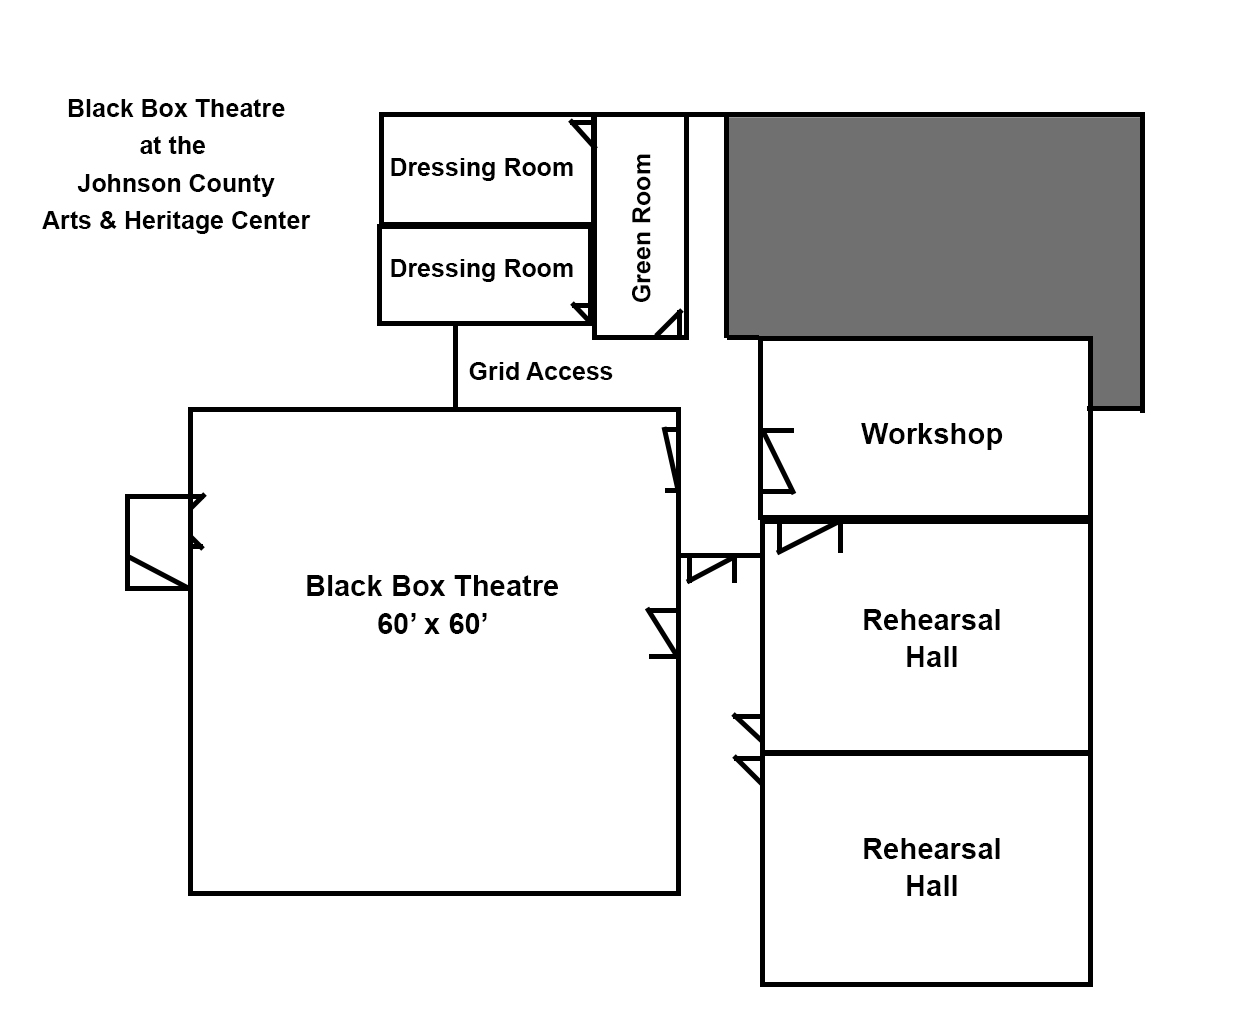 proscenium stage diagram box supra 2jz gte wiring theatre specs in the park download a file of and space layout